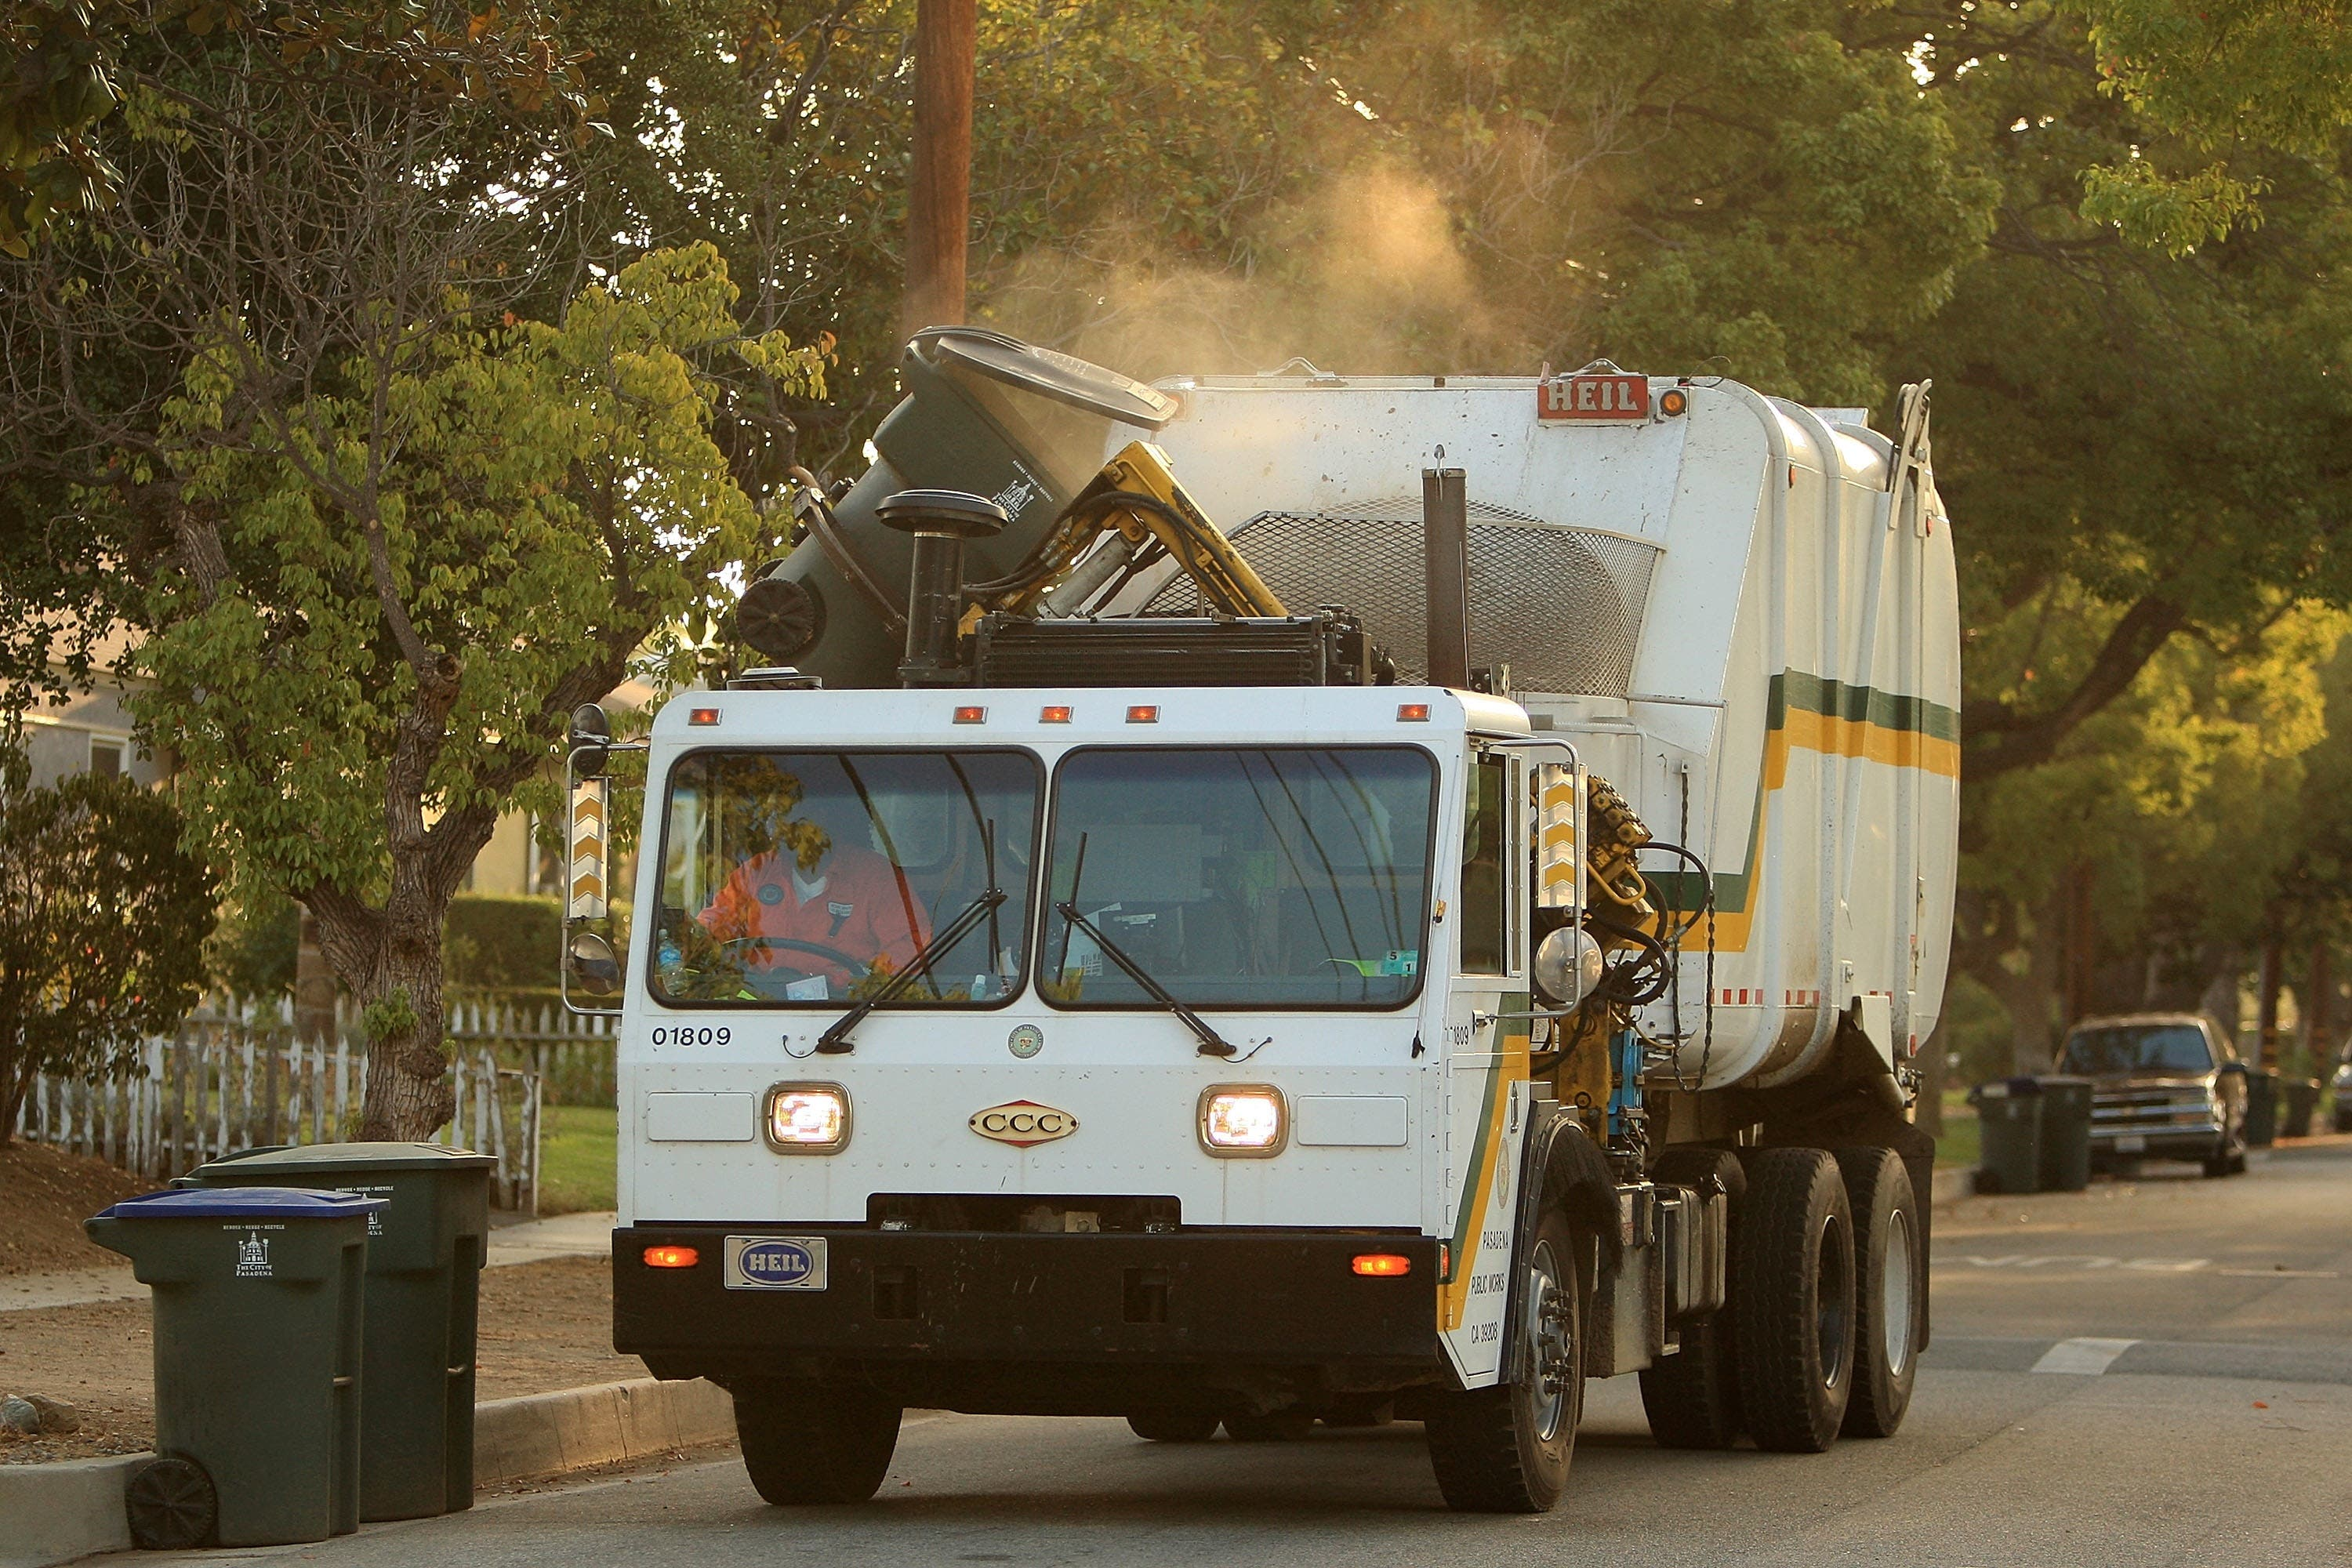 City Leaders Lob Allegations of Dishonesty Over Trash Contract | Los